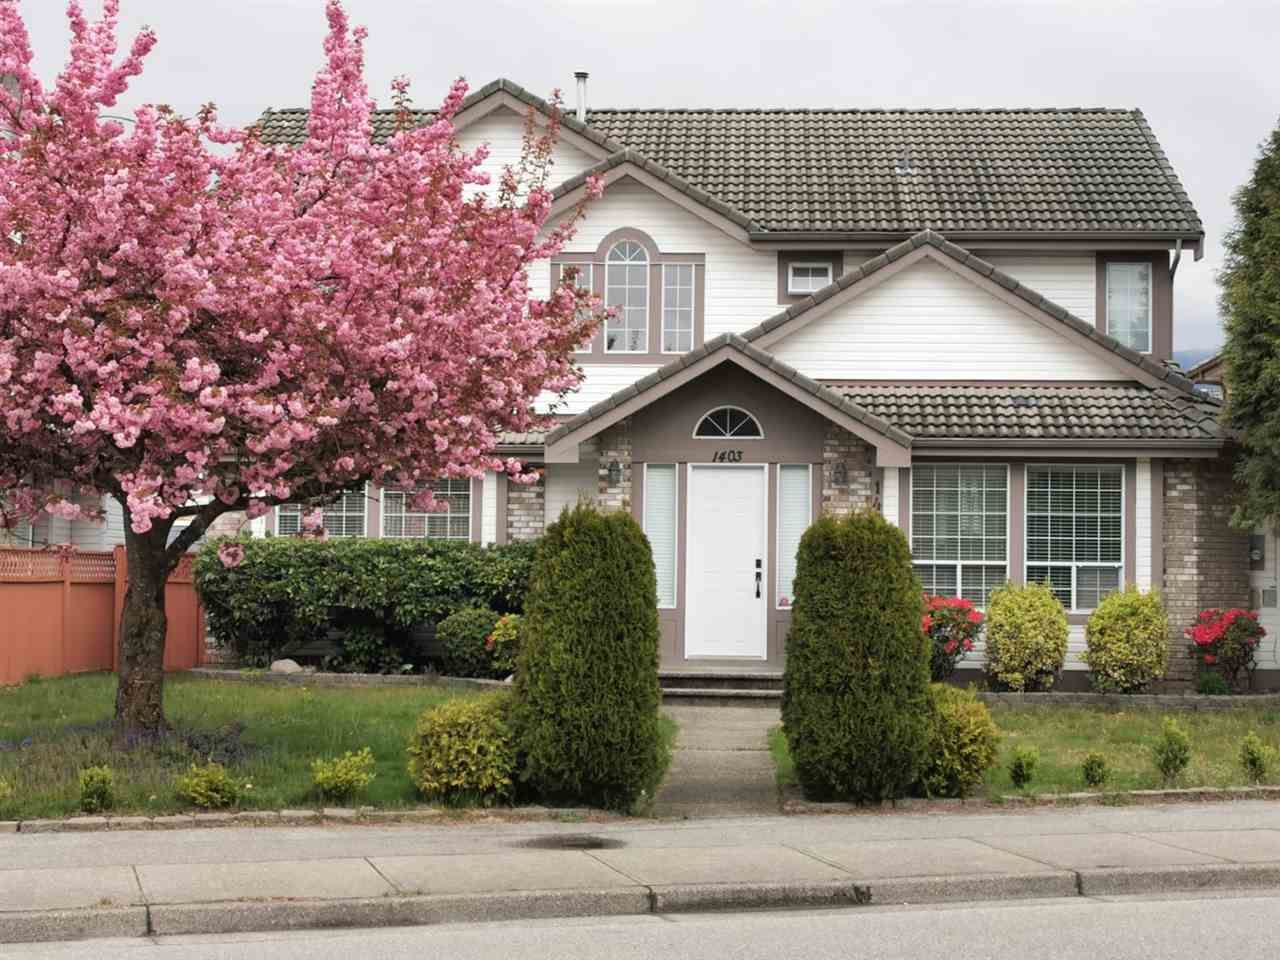 """Main Photo: 1403 RIVERWOOD Gate in Port Coquitlam: Riverwood House for sale in """"Riverwood"""" : MLS®# R2544150"""